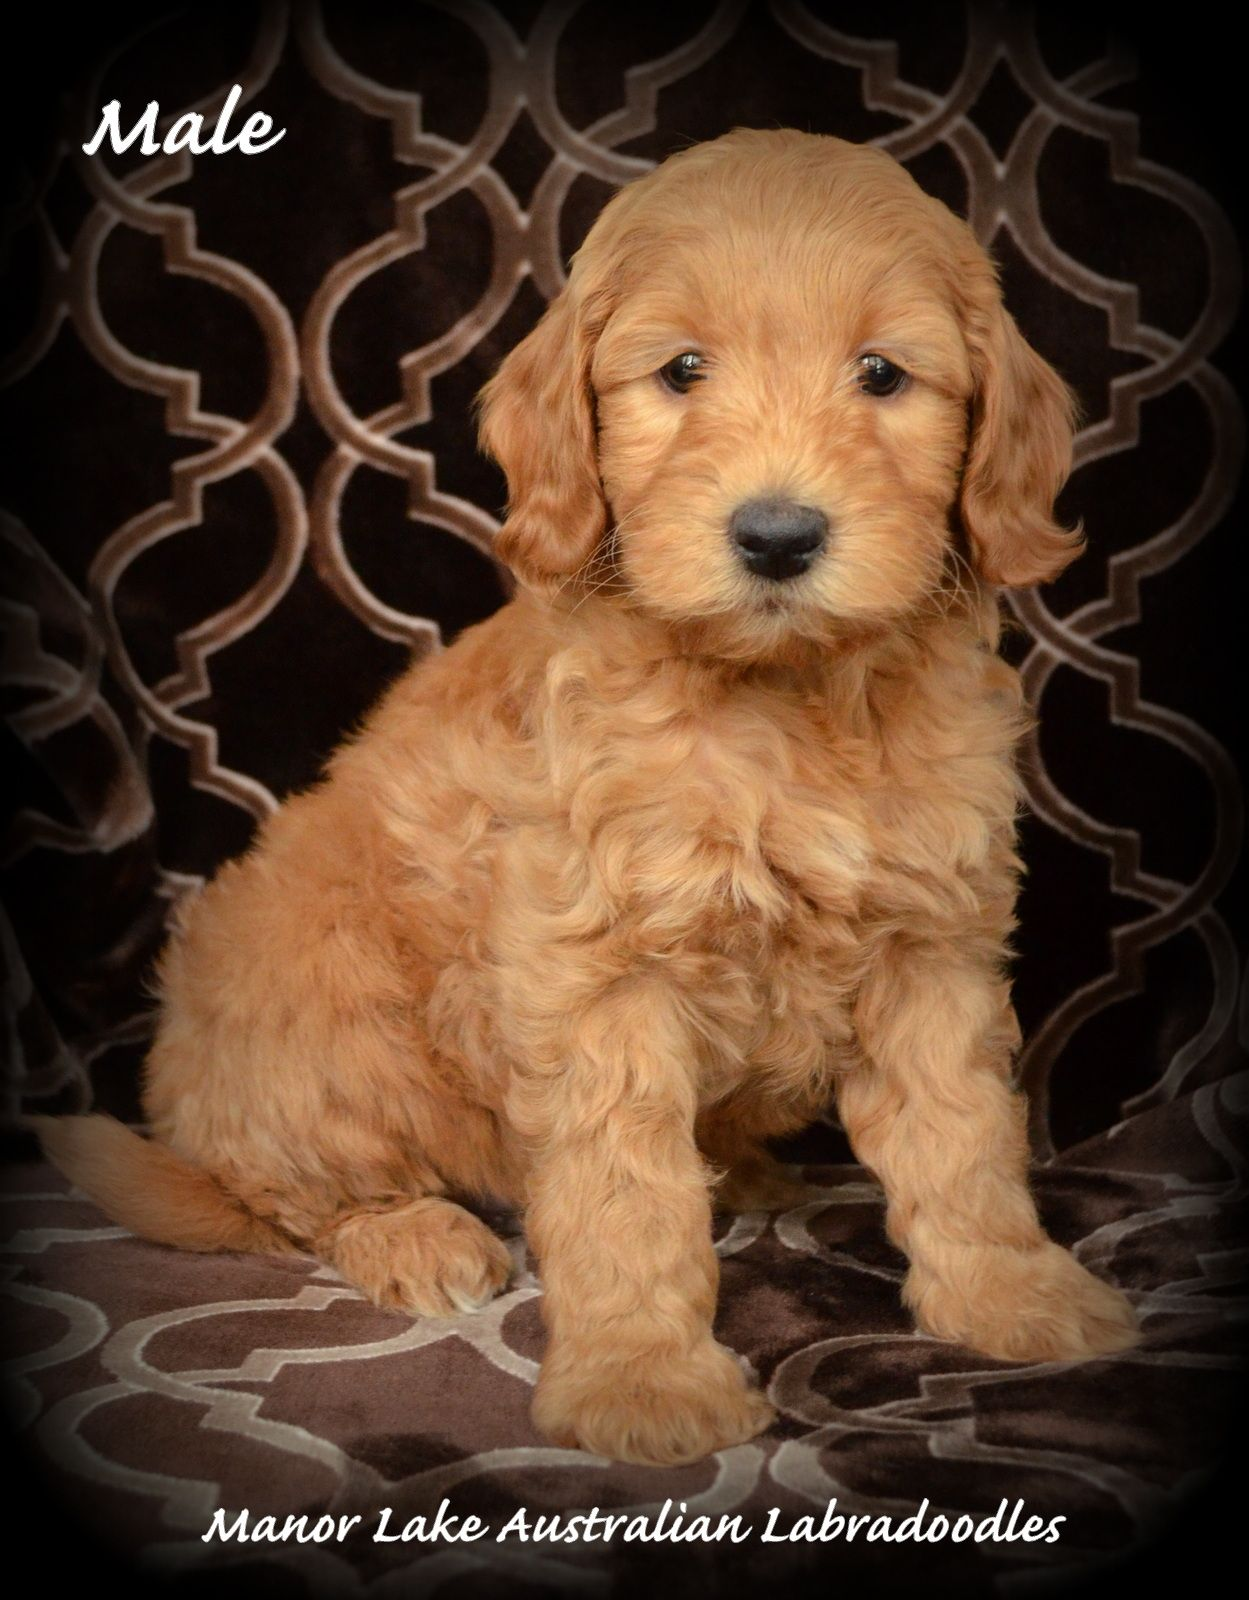 Available Austrailian Labradoodle Puppies Manor Lake Australian Labradoodles Miniature Australian Labradoodle Austrailian Labradoodle Puppy Labradoodle Puppy